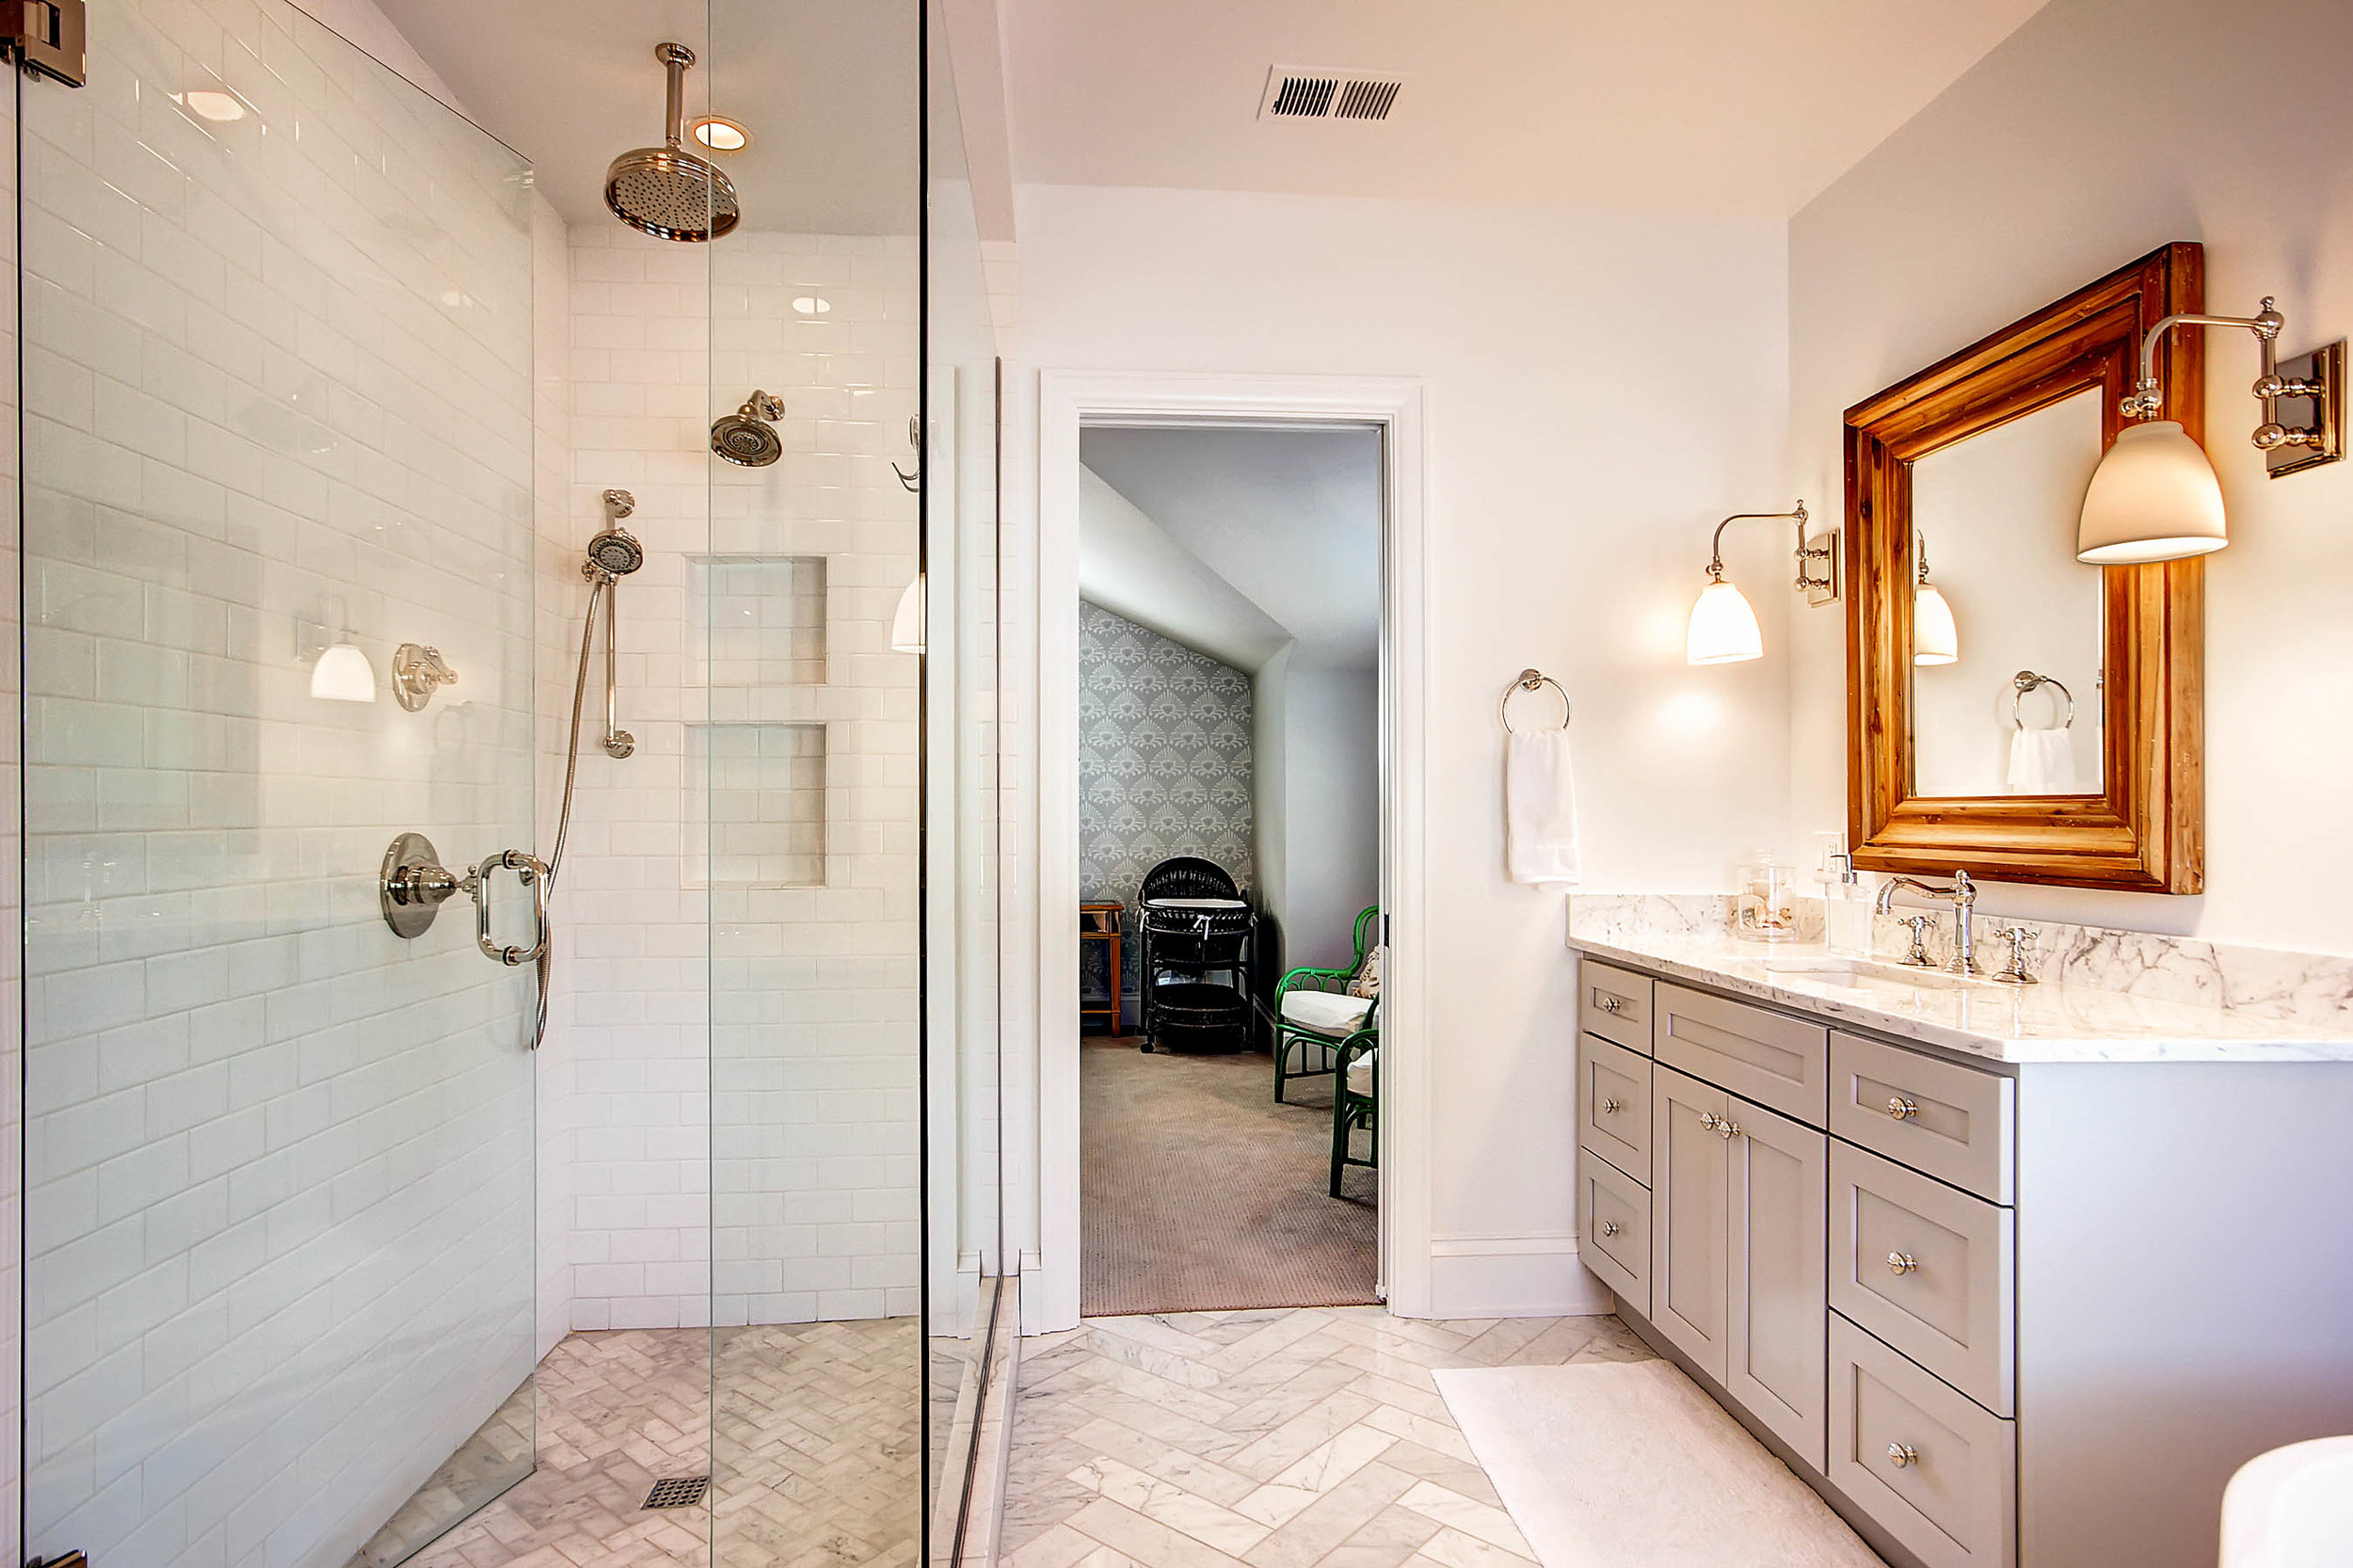 863 S Williams St Denver CO-print-019-26-2nd Floor Master Bathroom-2700x1799-300dpi.jpg